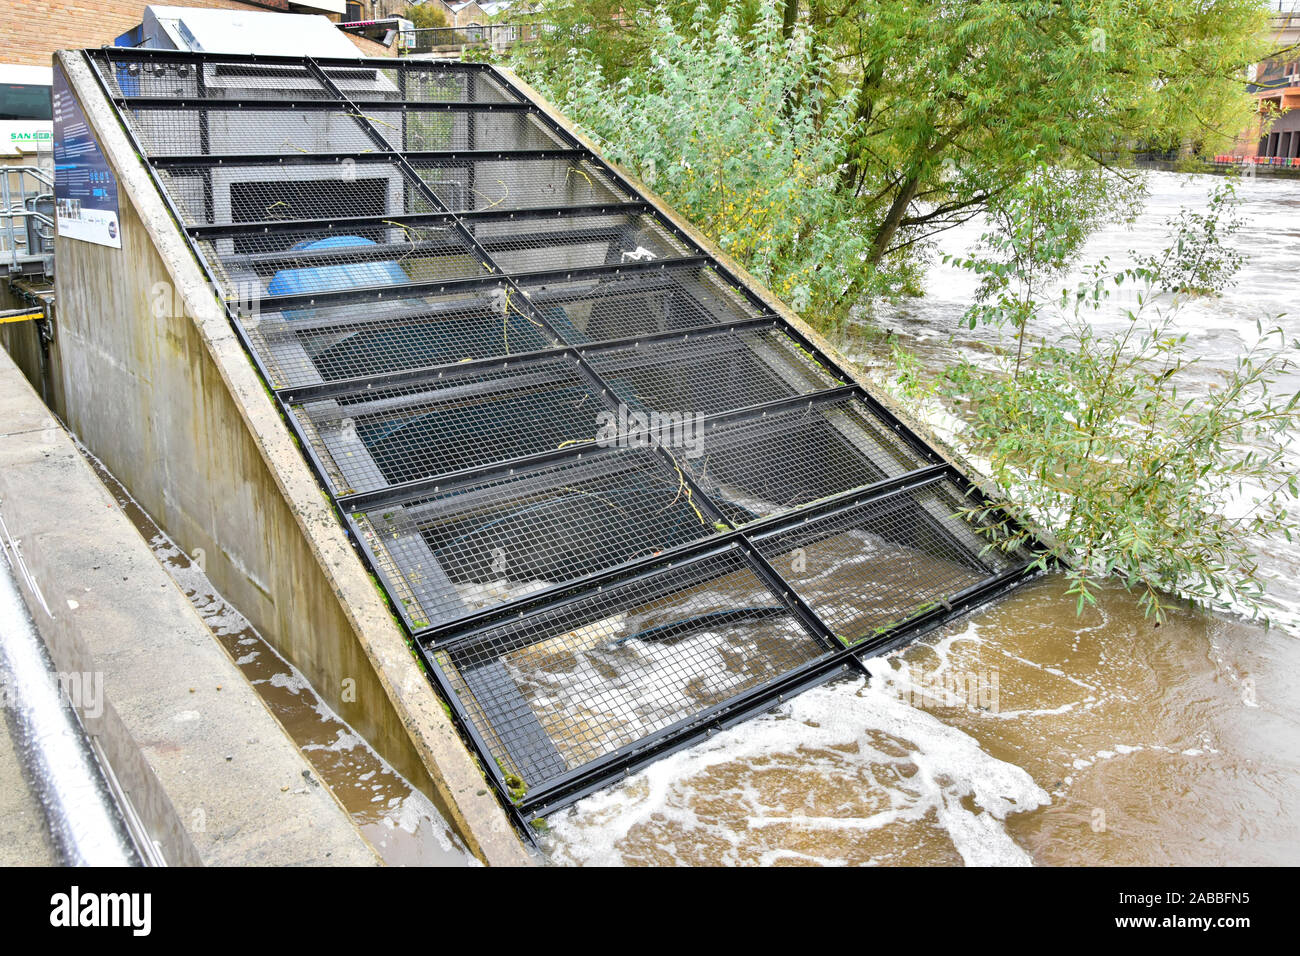 Part of archimedean screw behind security cage being driven by River Wear fast water flow in hydro electricity power generator installation Durham UK Stock Photo